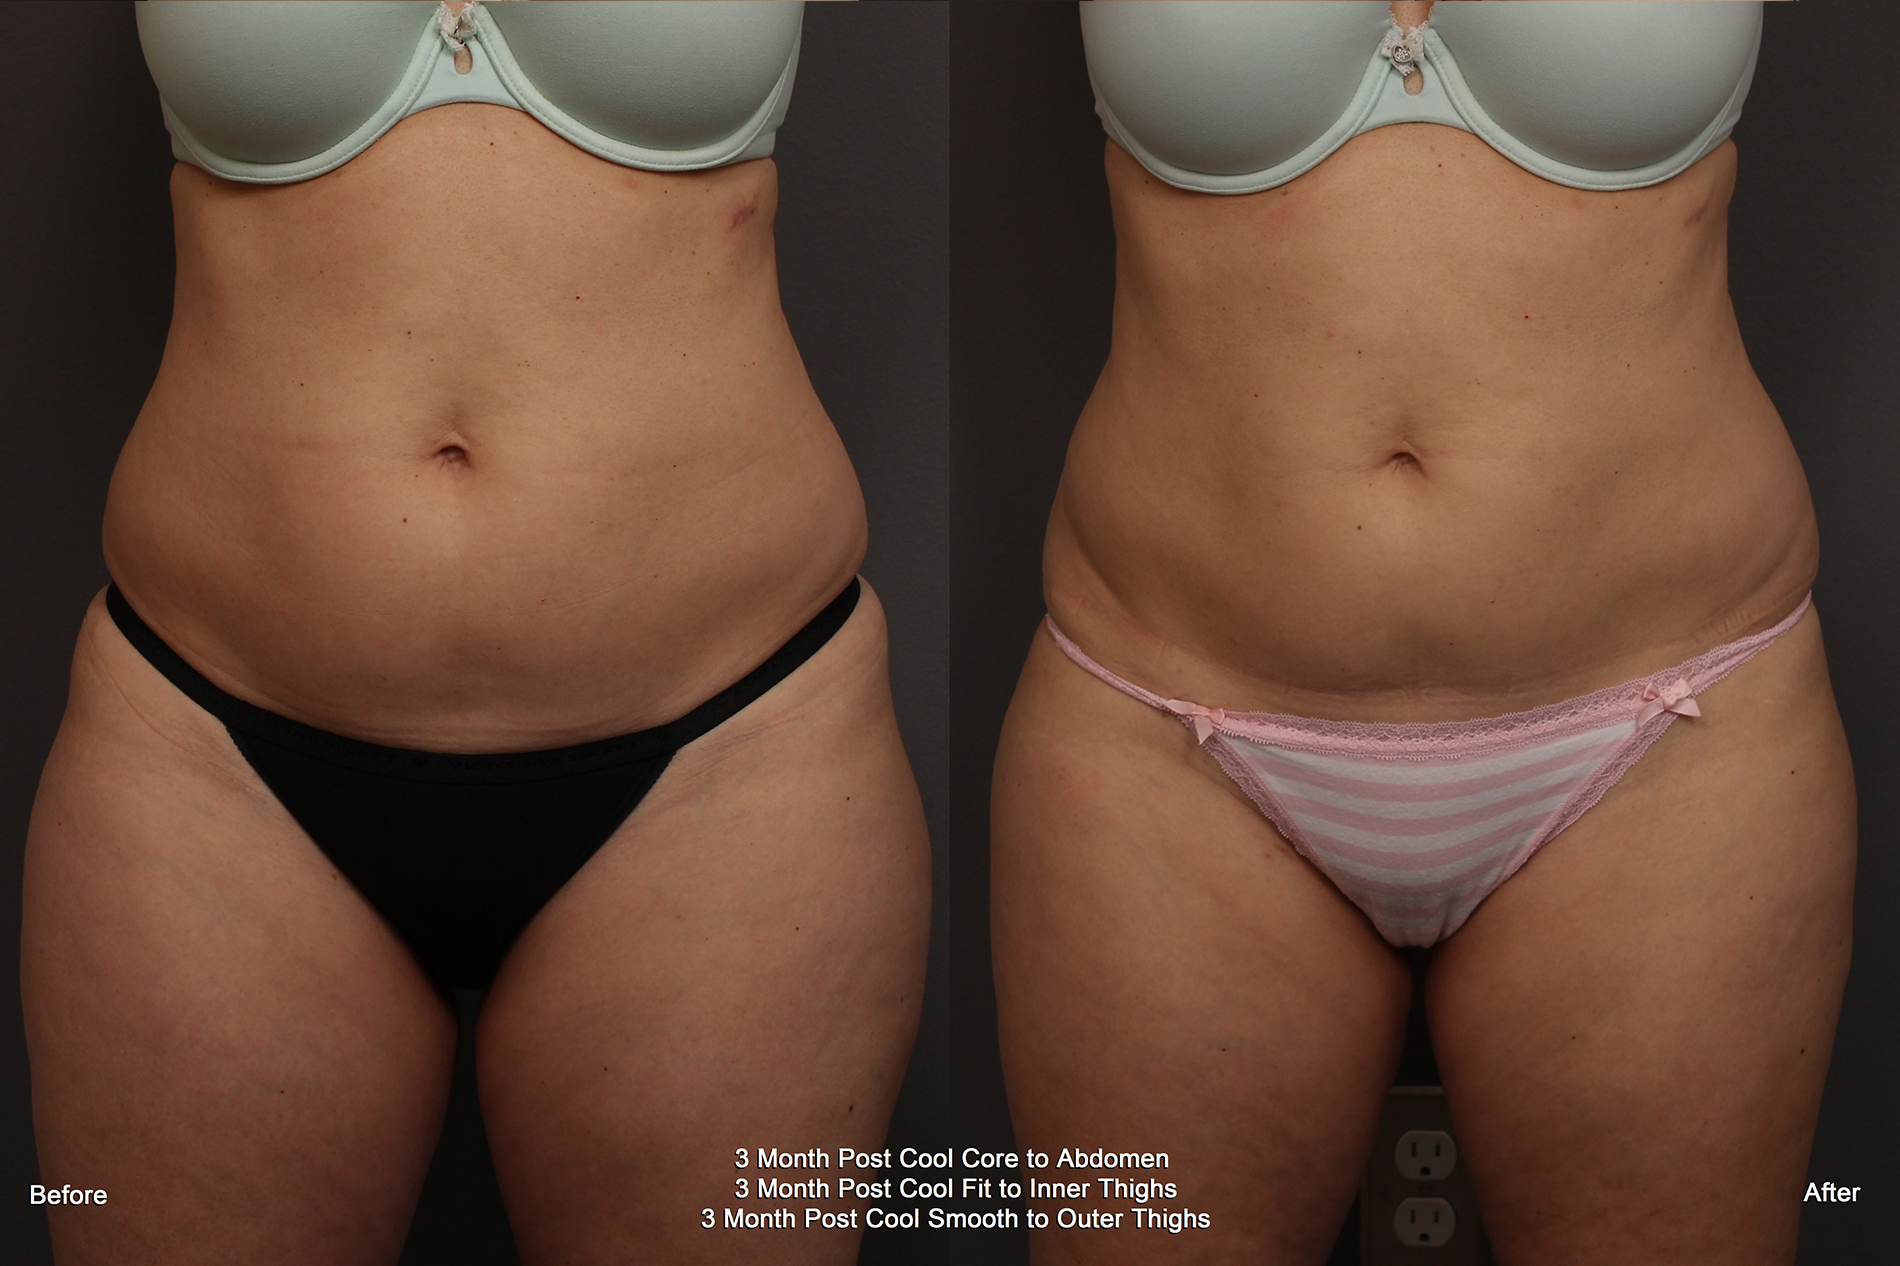 Before and After CoolSculpting Results from Werschler Aesthetics in Spokane, WA